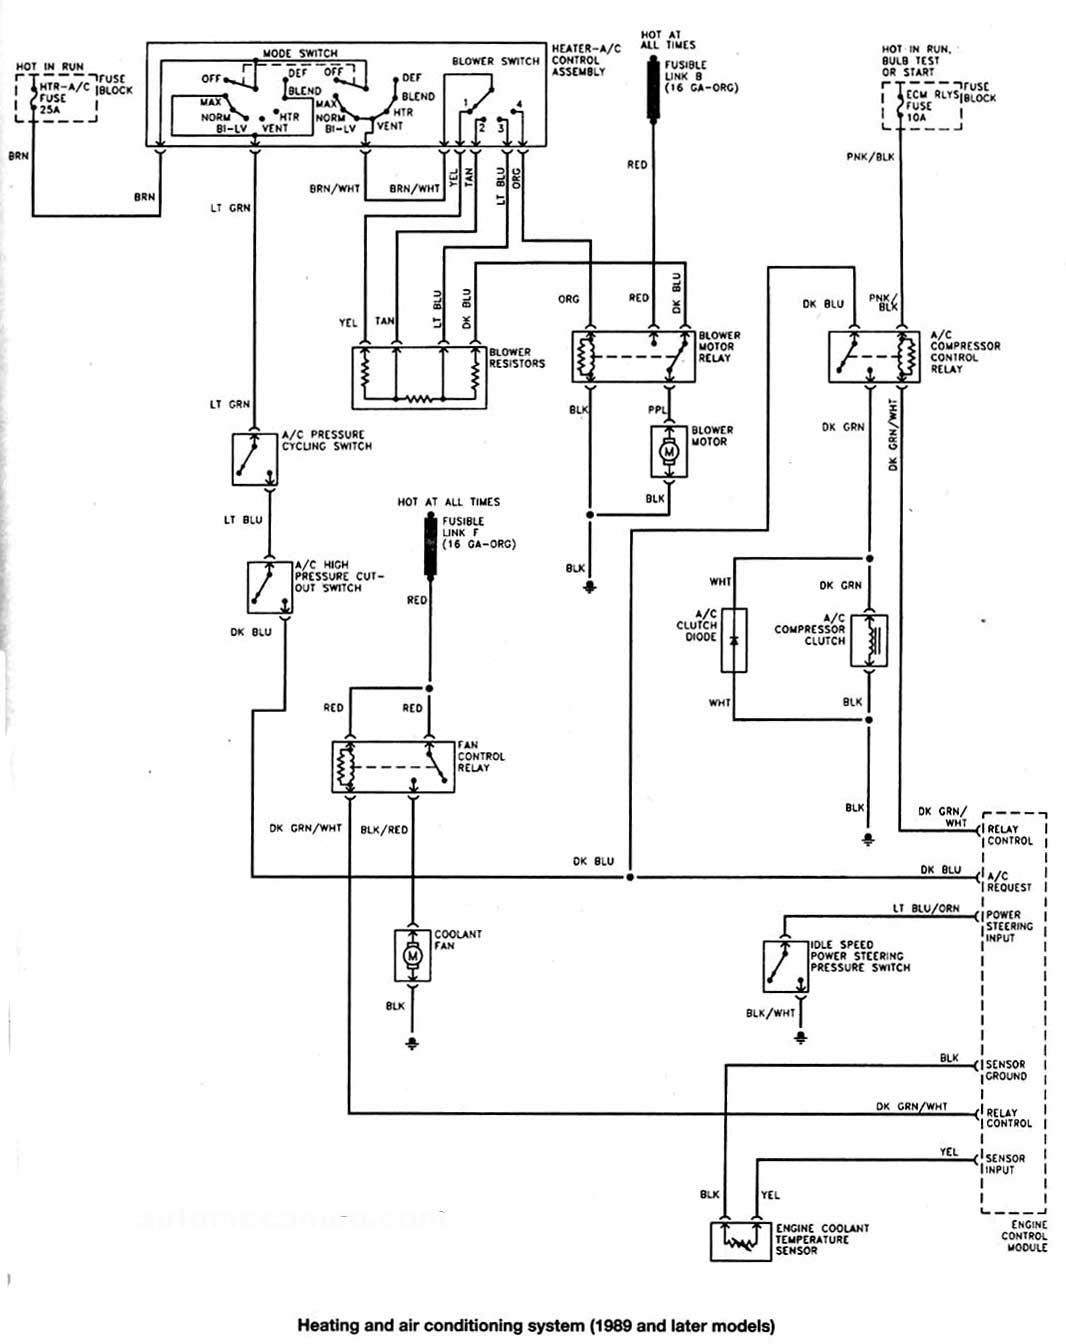 1996 plymouth voyager fuse box diagram 1996 plymouth voyager engine wiring diagram